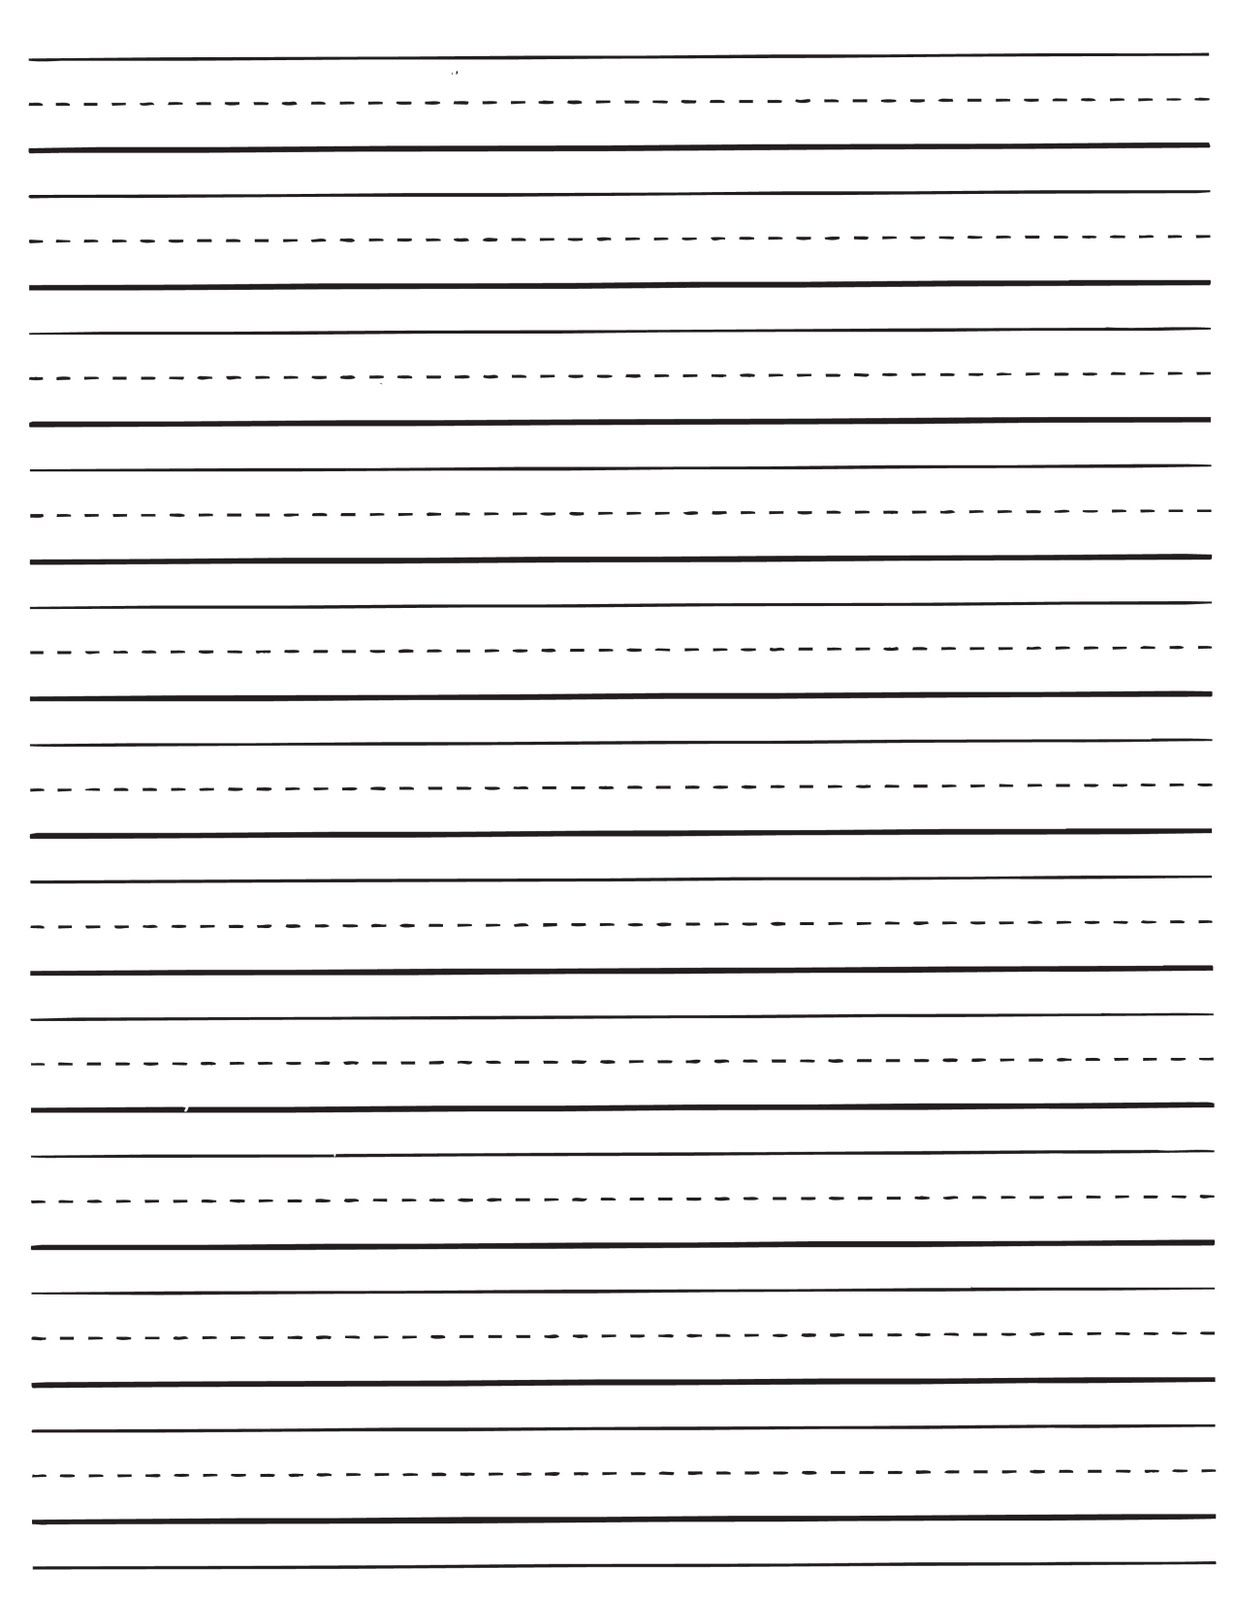 Free Lined Writing Paper construction progress report template – Lined Paper Template for Word